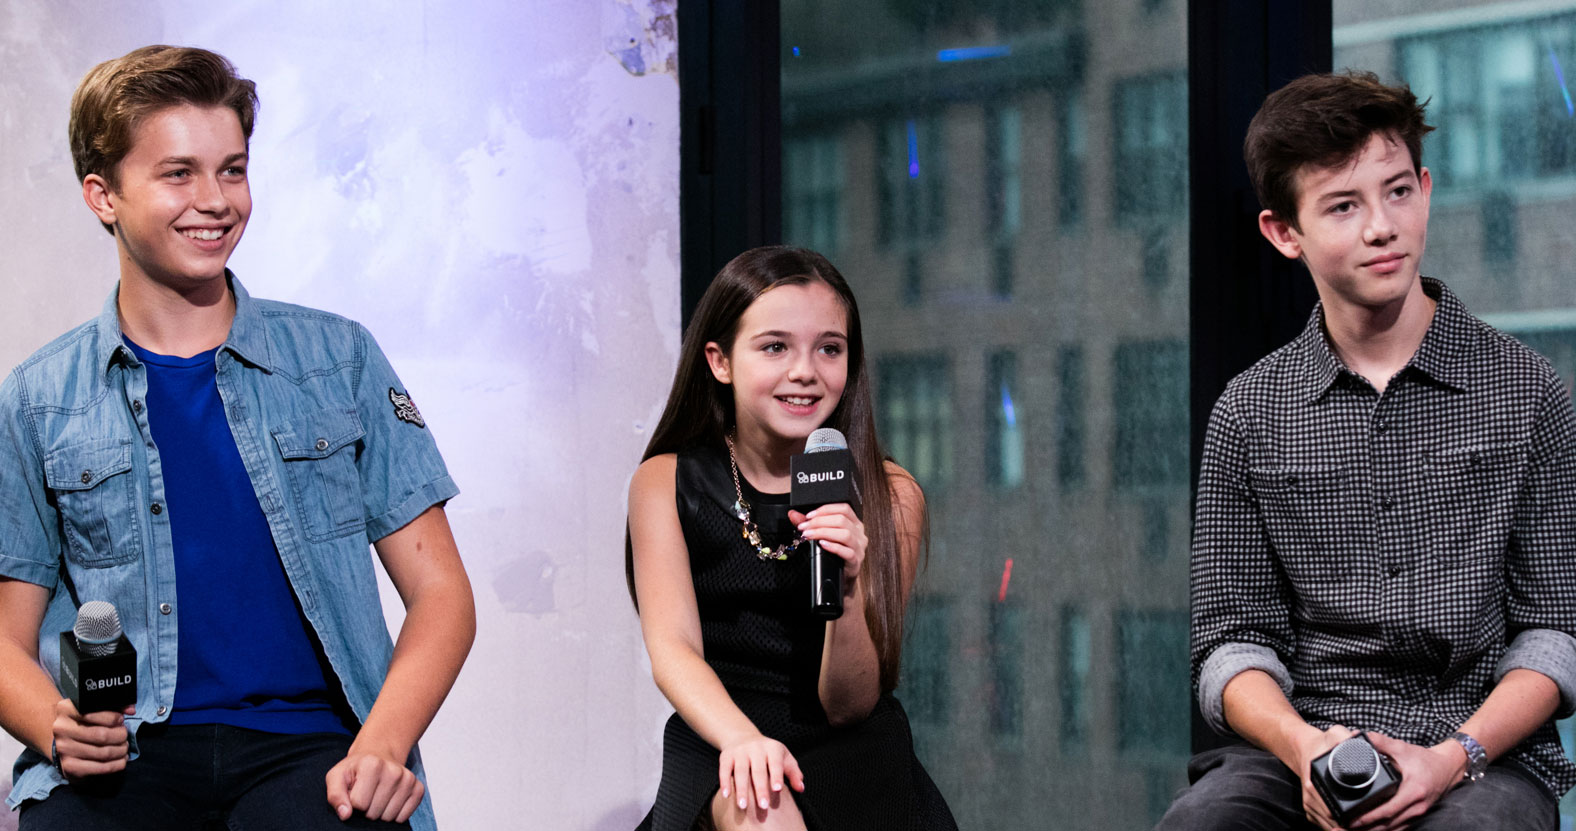 griffin gluck promotes �middle school� with the cast in